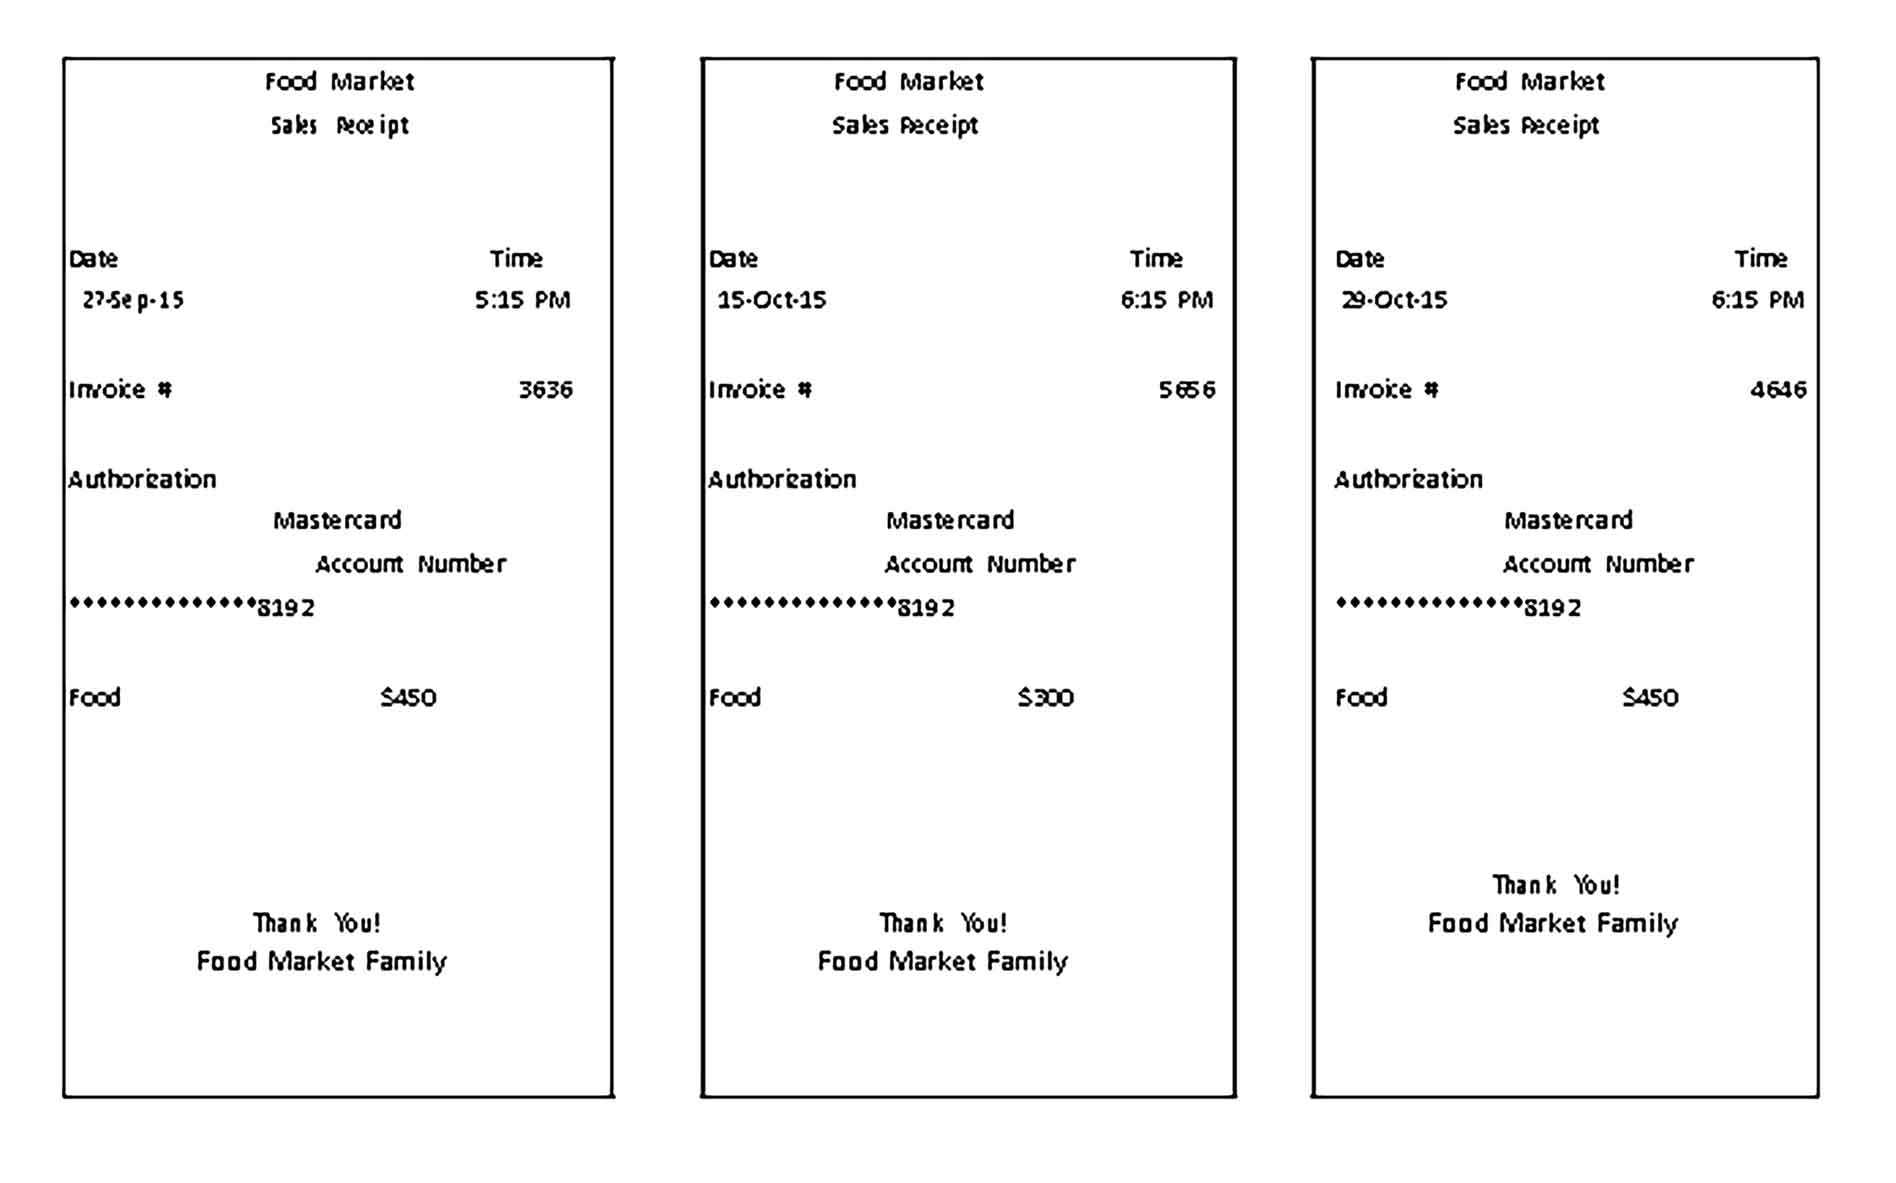 Sample Food Market Sales Receipt Templates